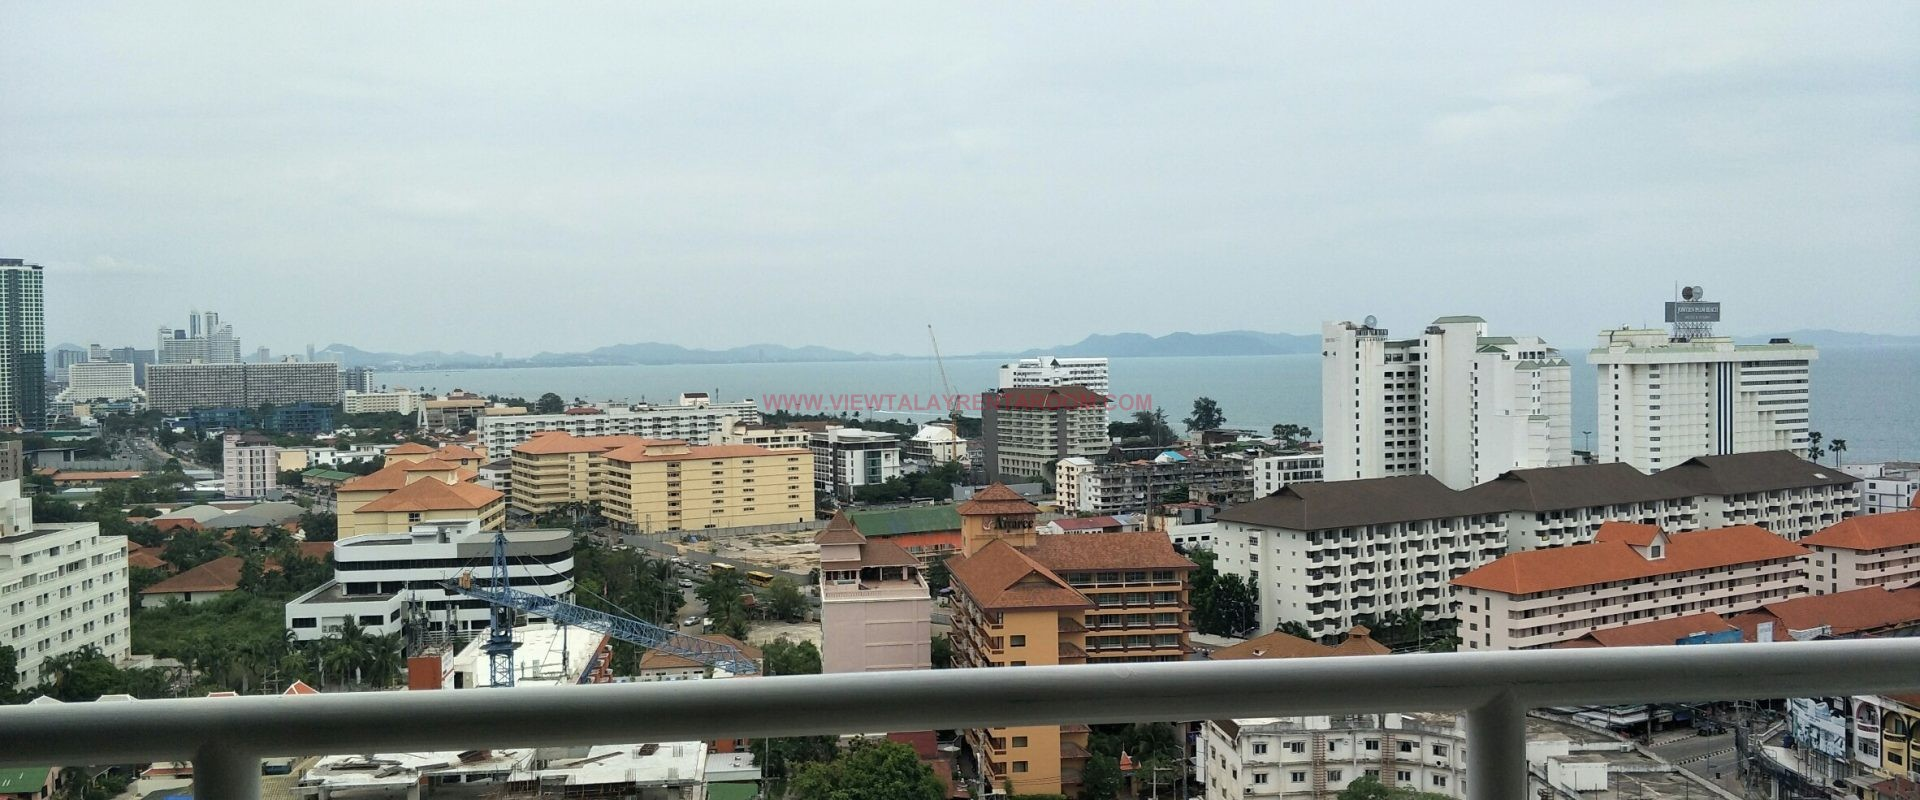 ID73 : View talay 2A